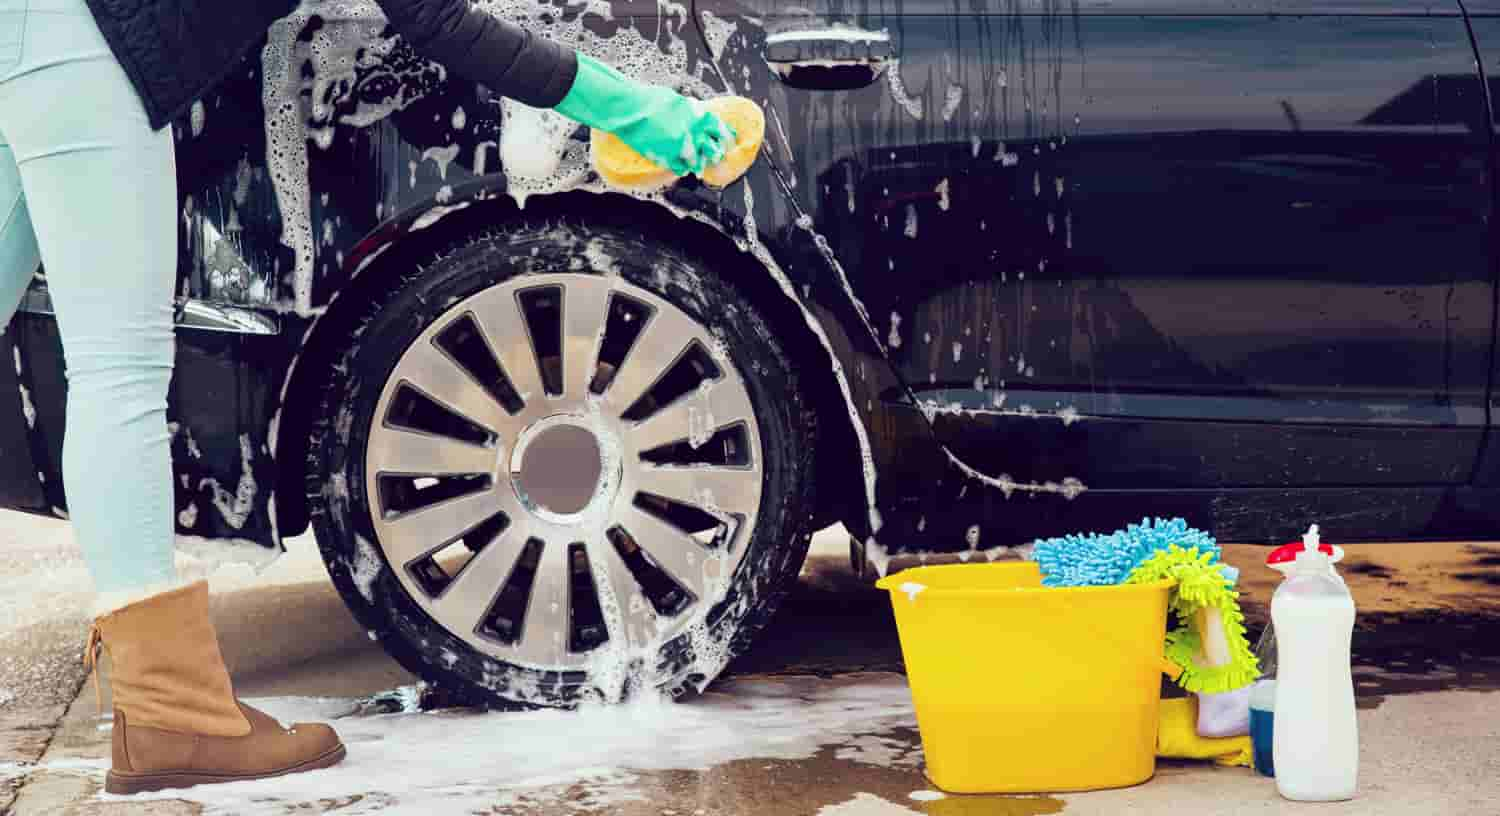 Ways To Extend the Life of Your Car And Keep It Healthy